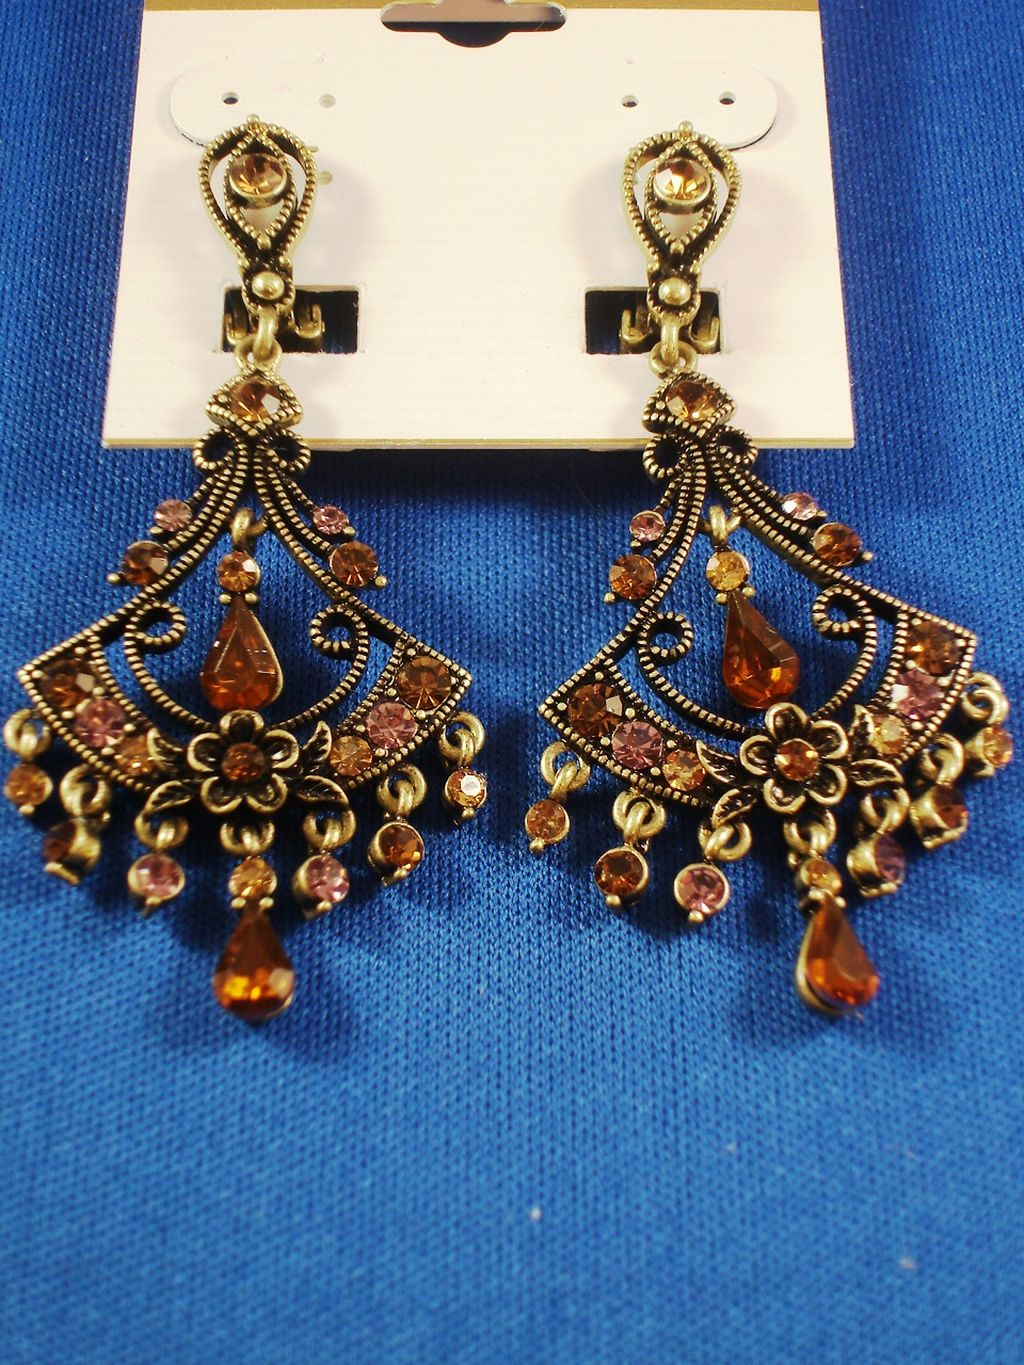 Topaz CZ Cubic Zirconia Crystal Filigree Clip Earrings